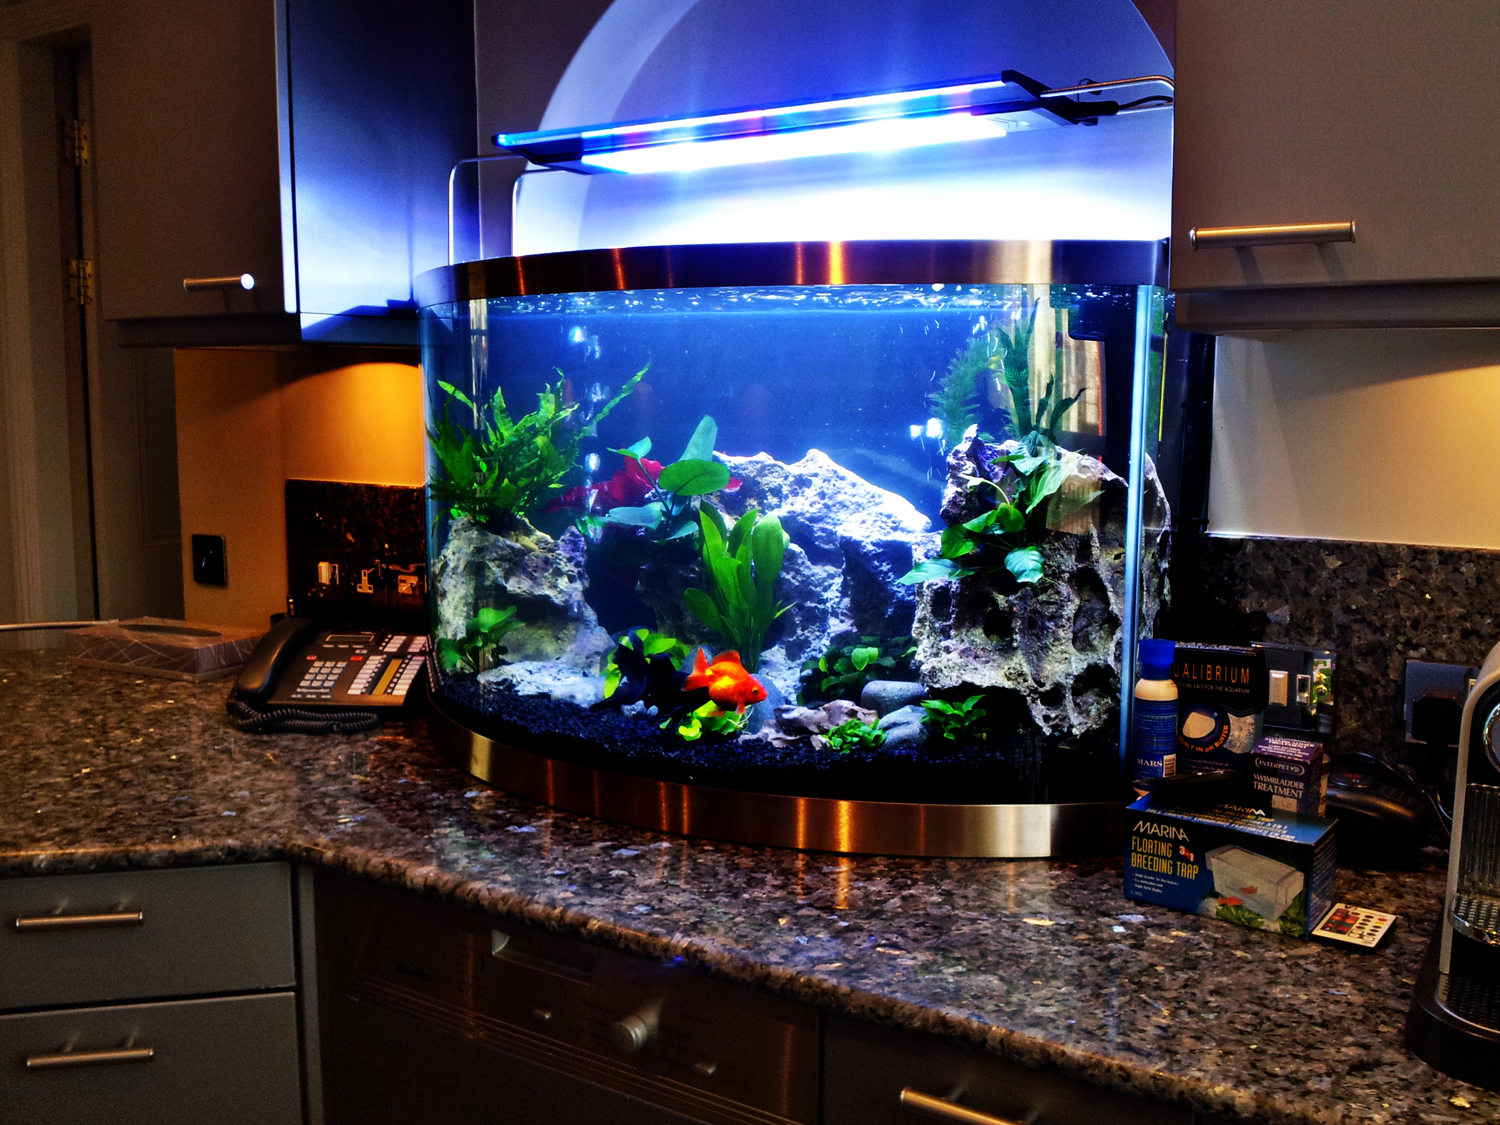 Freshwater fish tank upkeep - Freshwater Aquarium Design